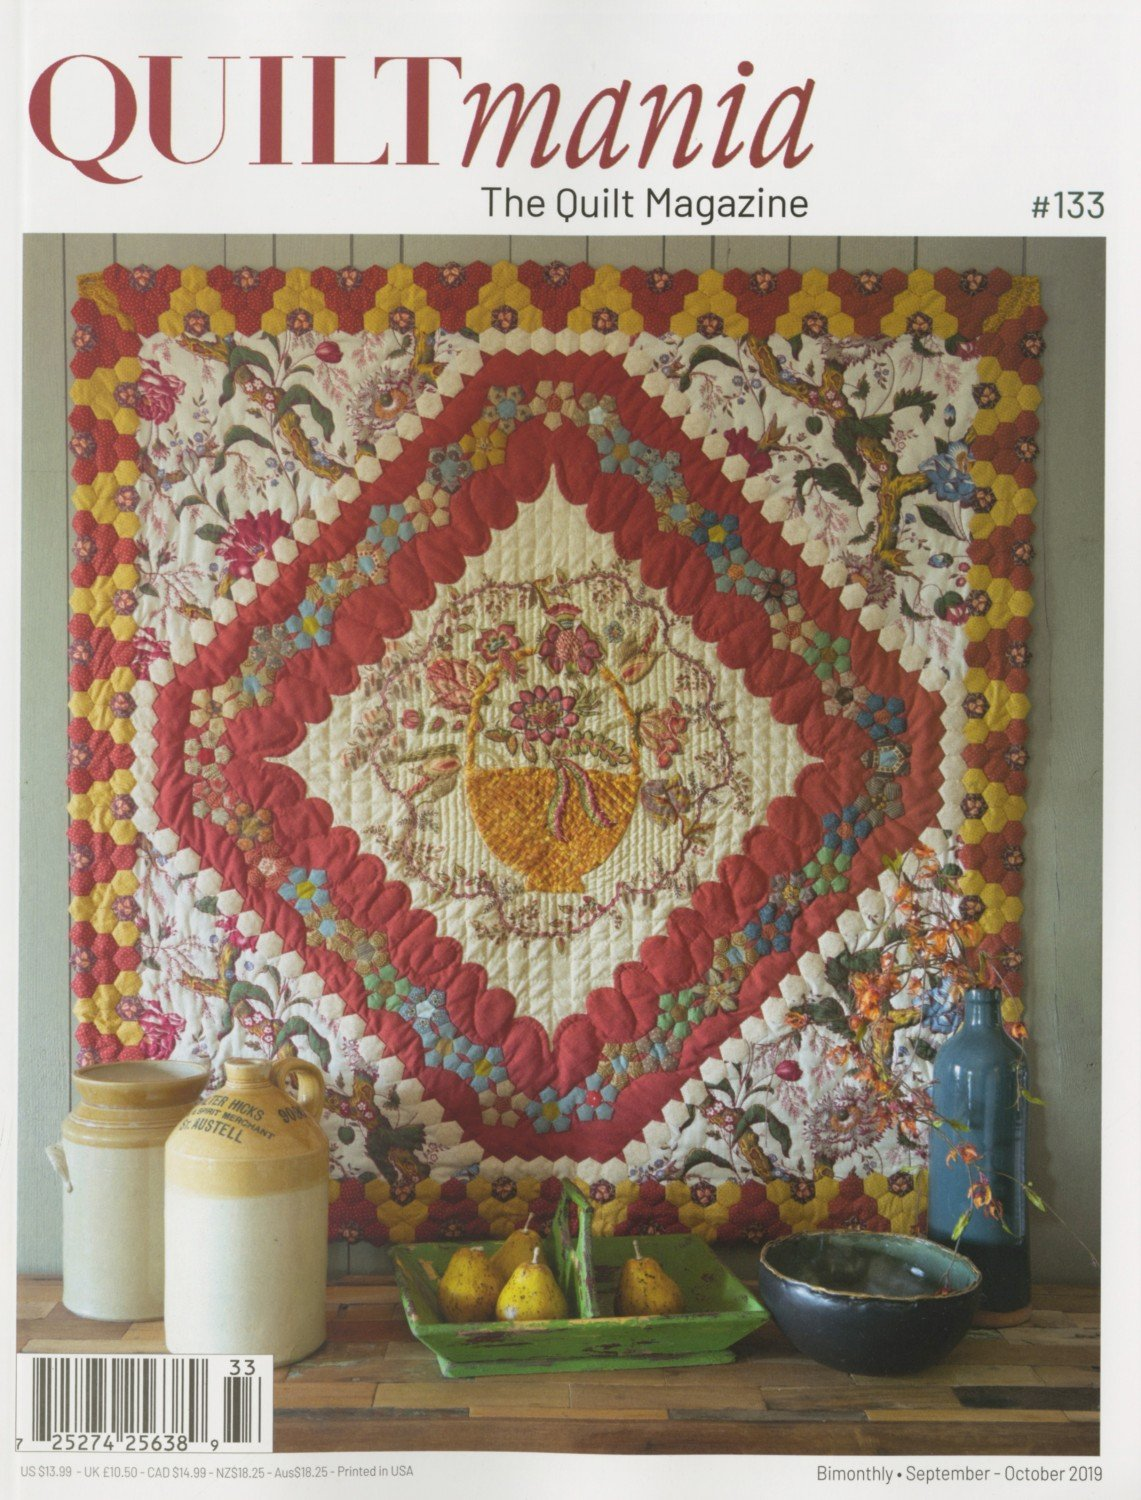 Quiltmania No. 133 The Quilt Magazine (September - October 2019)